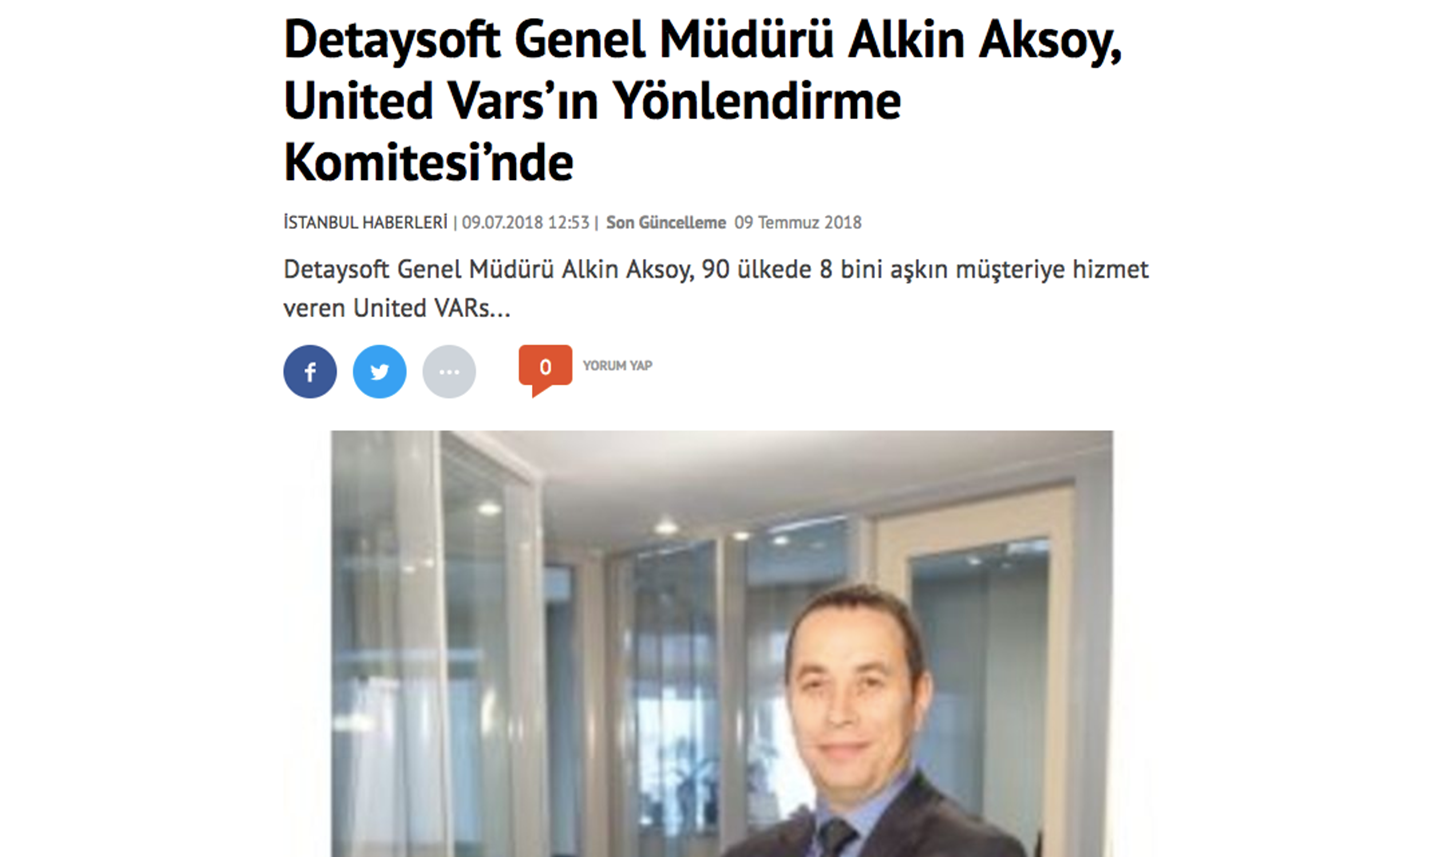 Detaysoft General Manager Alkin Aksoy joins the Steering Committee of United VARs